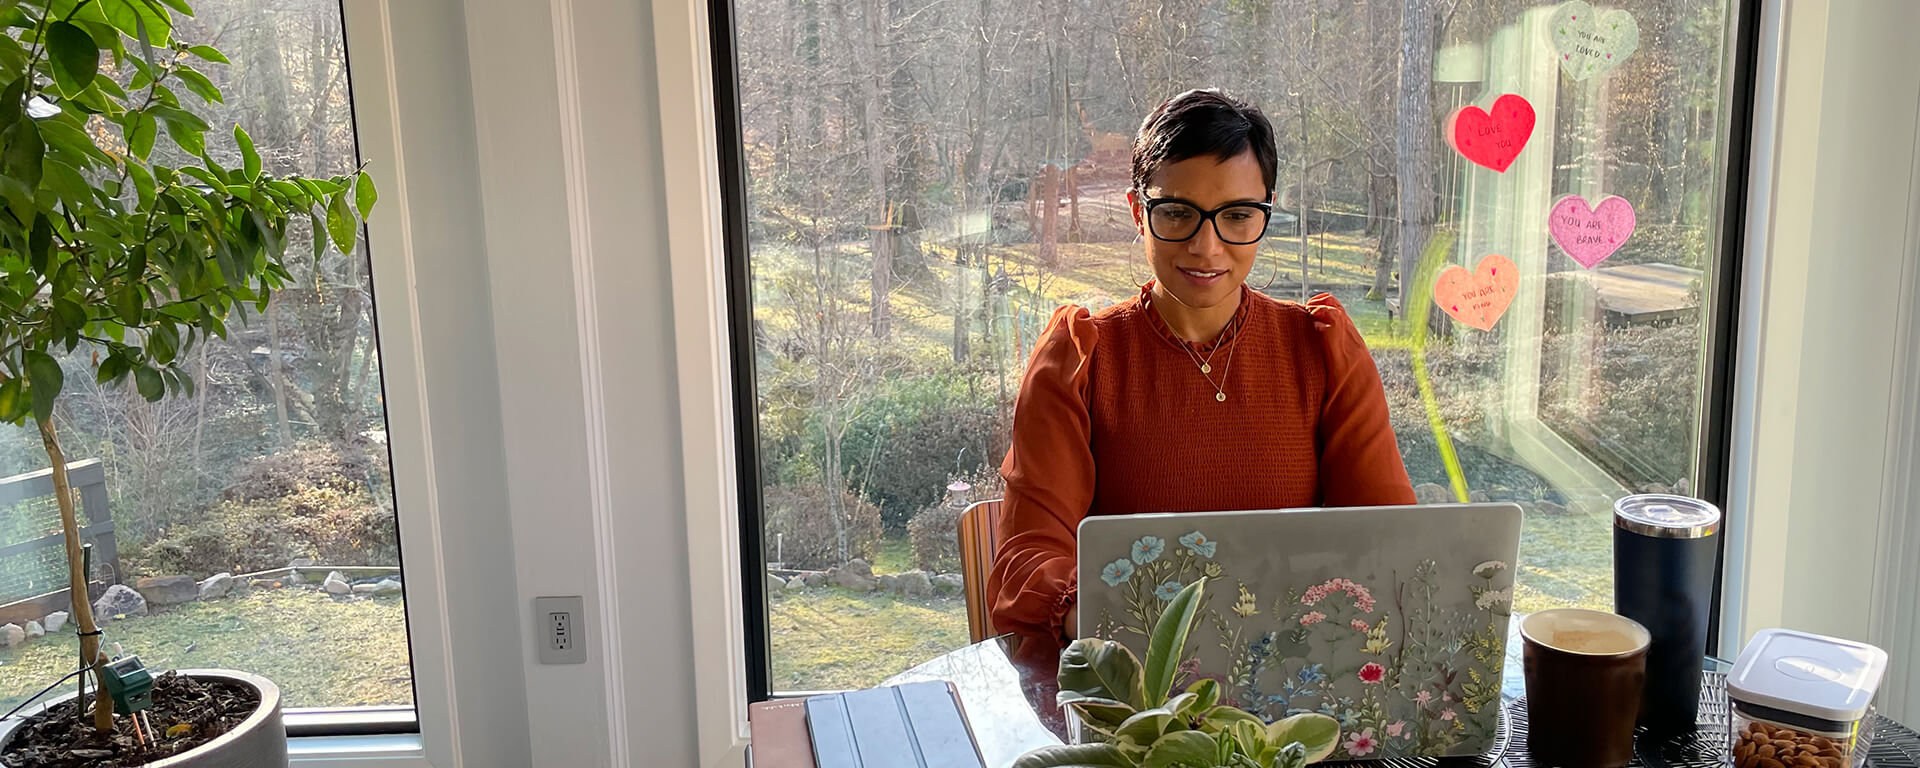 Capital One associate working at her laptop at home for the Catalyst Rotational Program